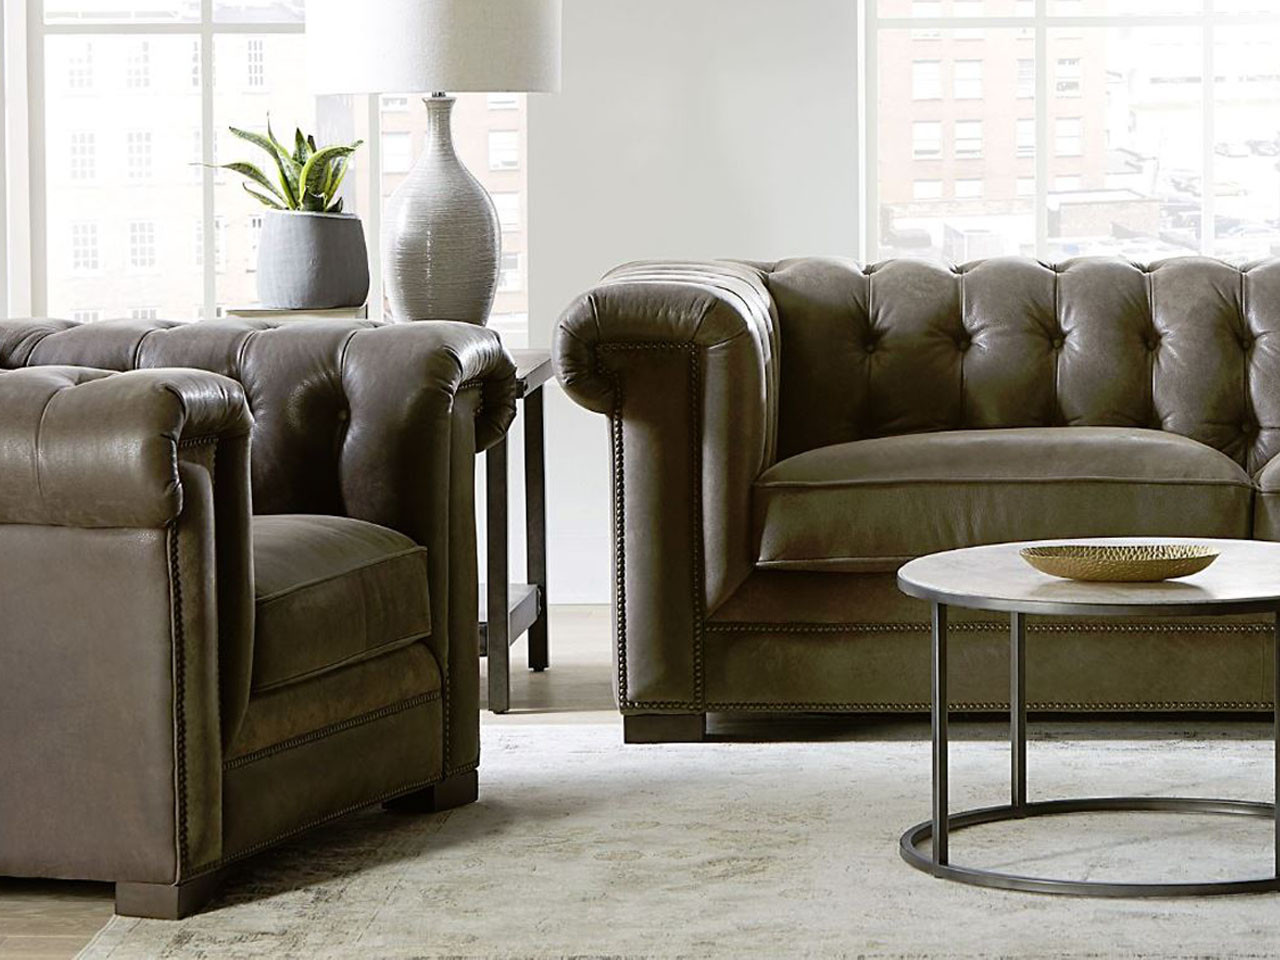 Gtr Tufted Back Leather Sofa